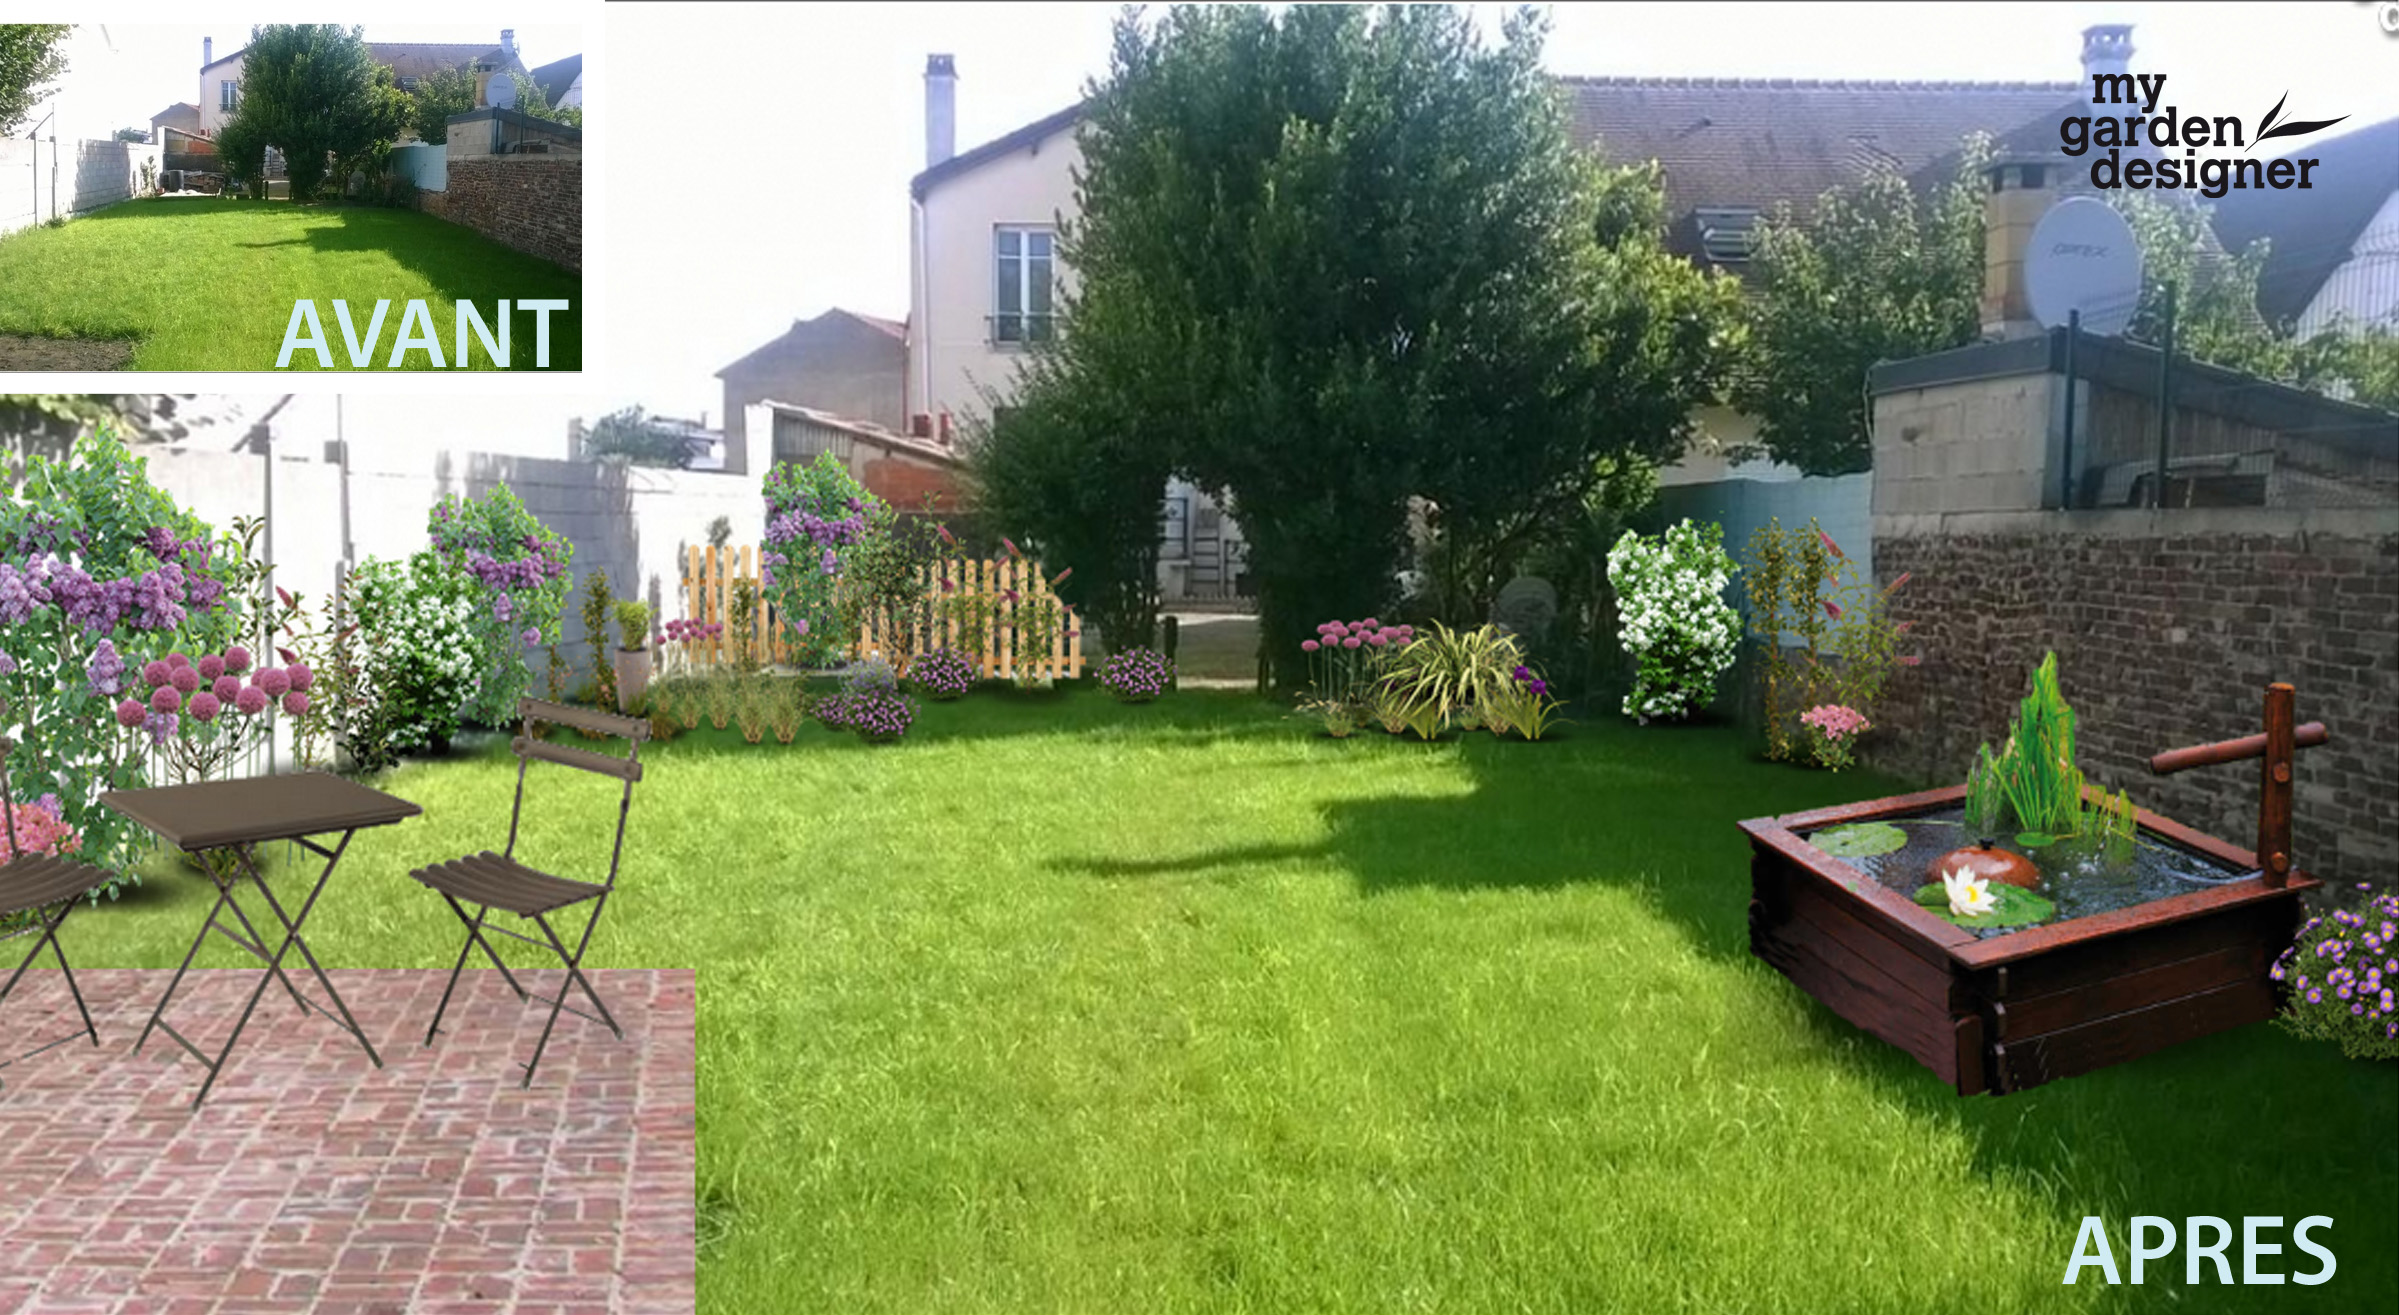 Am nager un jardin carr en ile de france monjardin for Amenager son jardin avec des vivaces